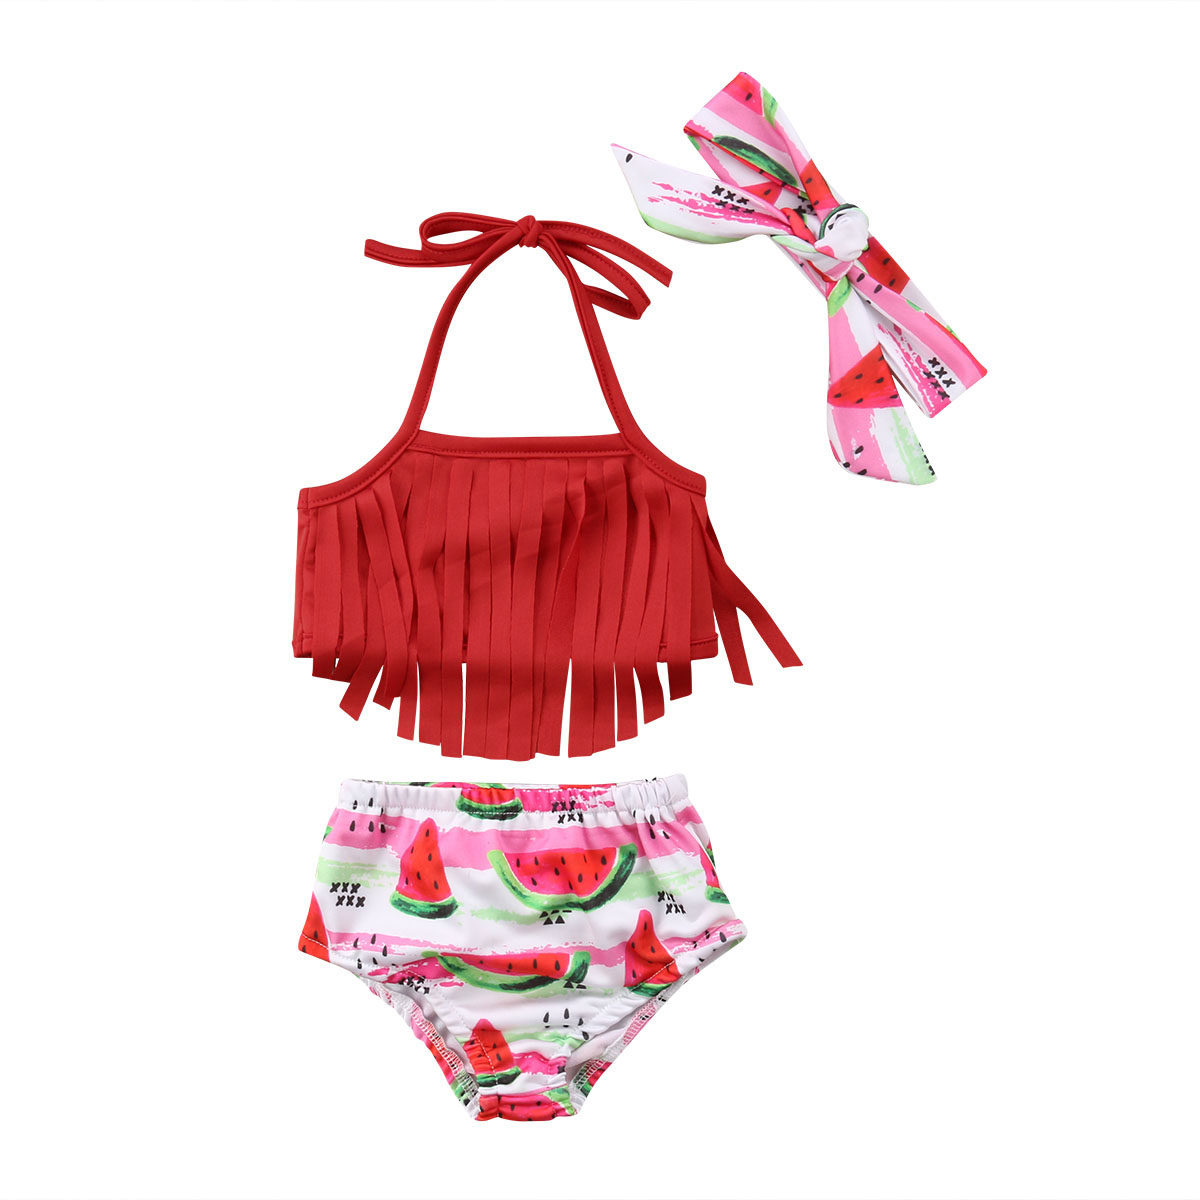 781ca3fac3b Tassel Toddler Kids Baby Girl Watermelon Bikini Set Fruit Swimwear Bathing  Suit Swimsuit-in Clothing Sets from Mother   Kids on Aliexpress.com